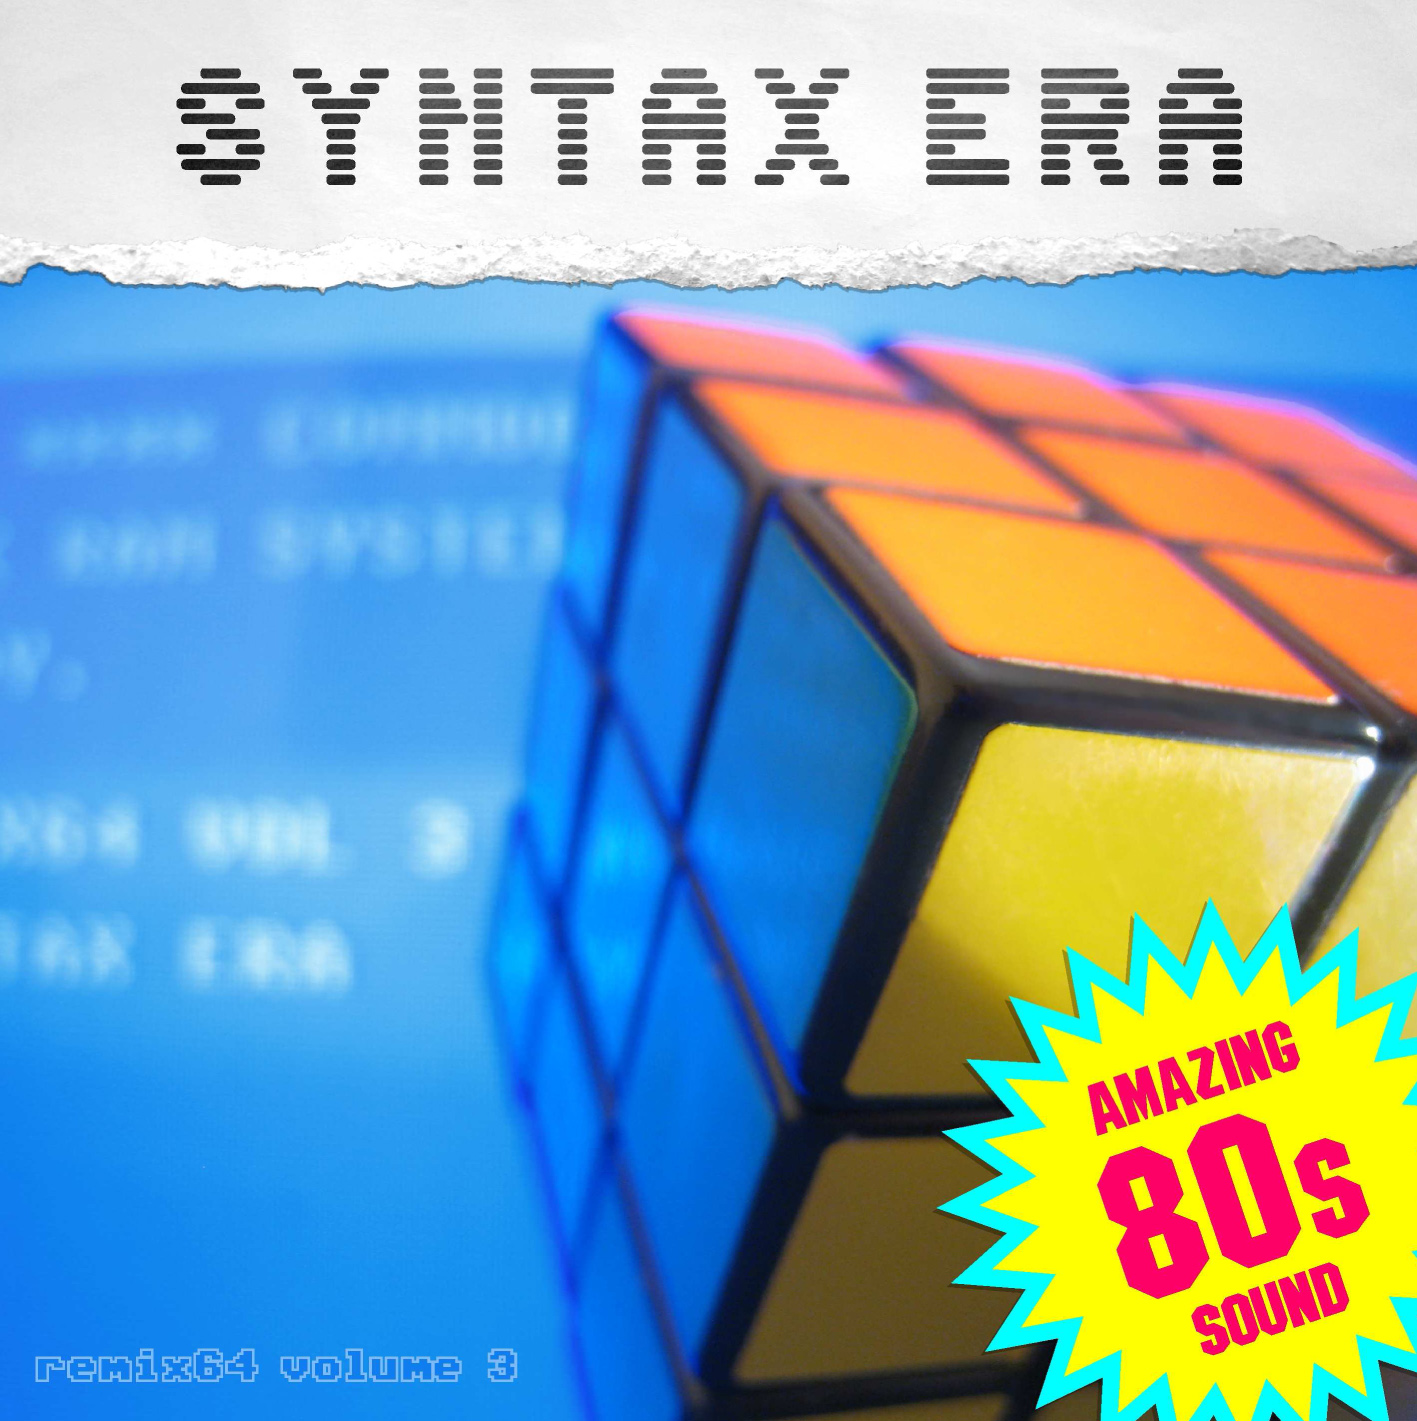 Syntax Era - Remix64 Volume 3